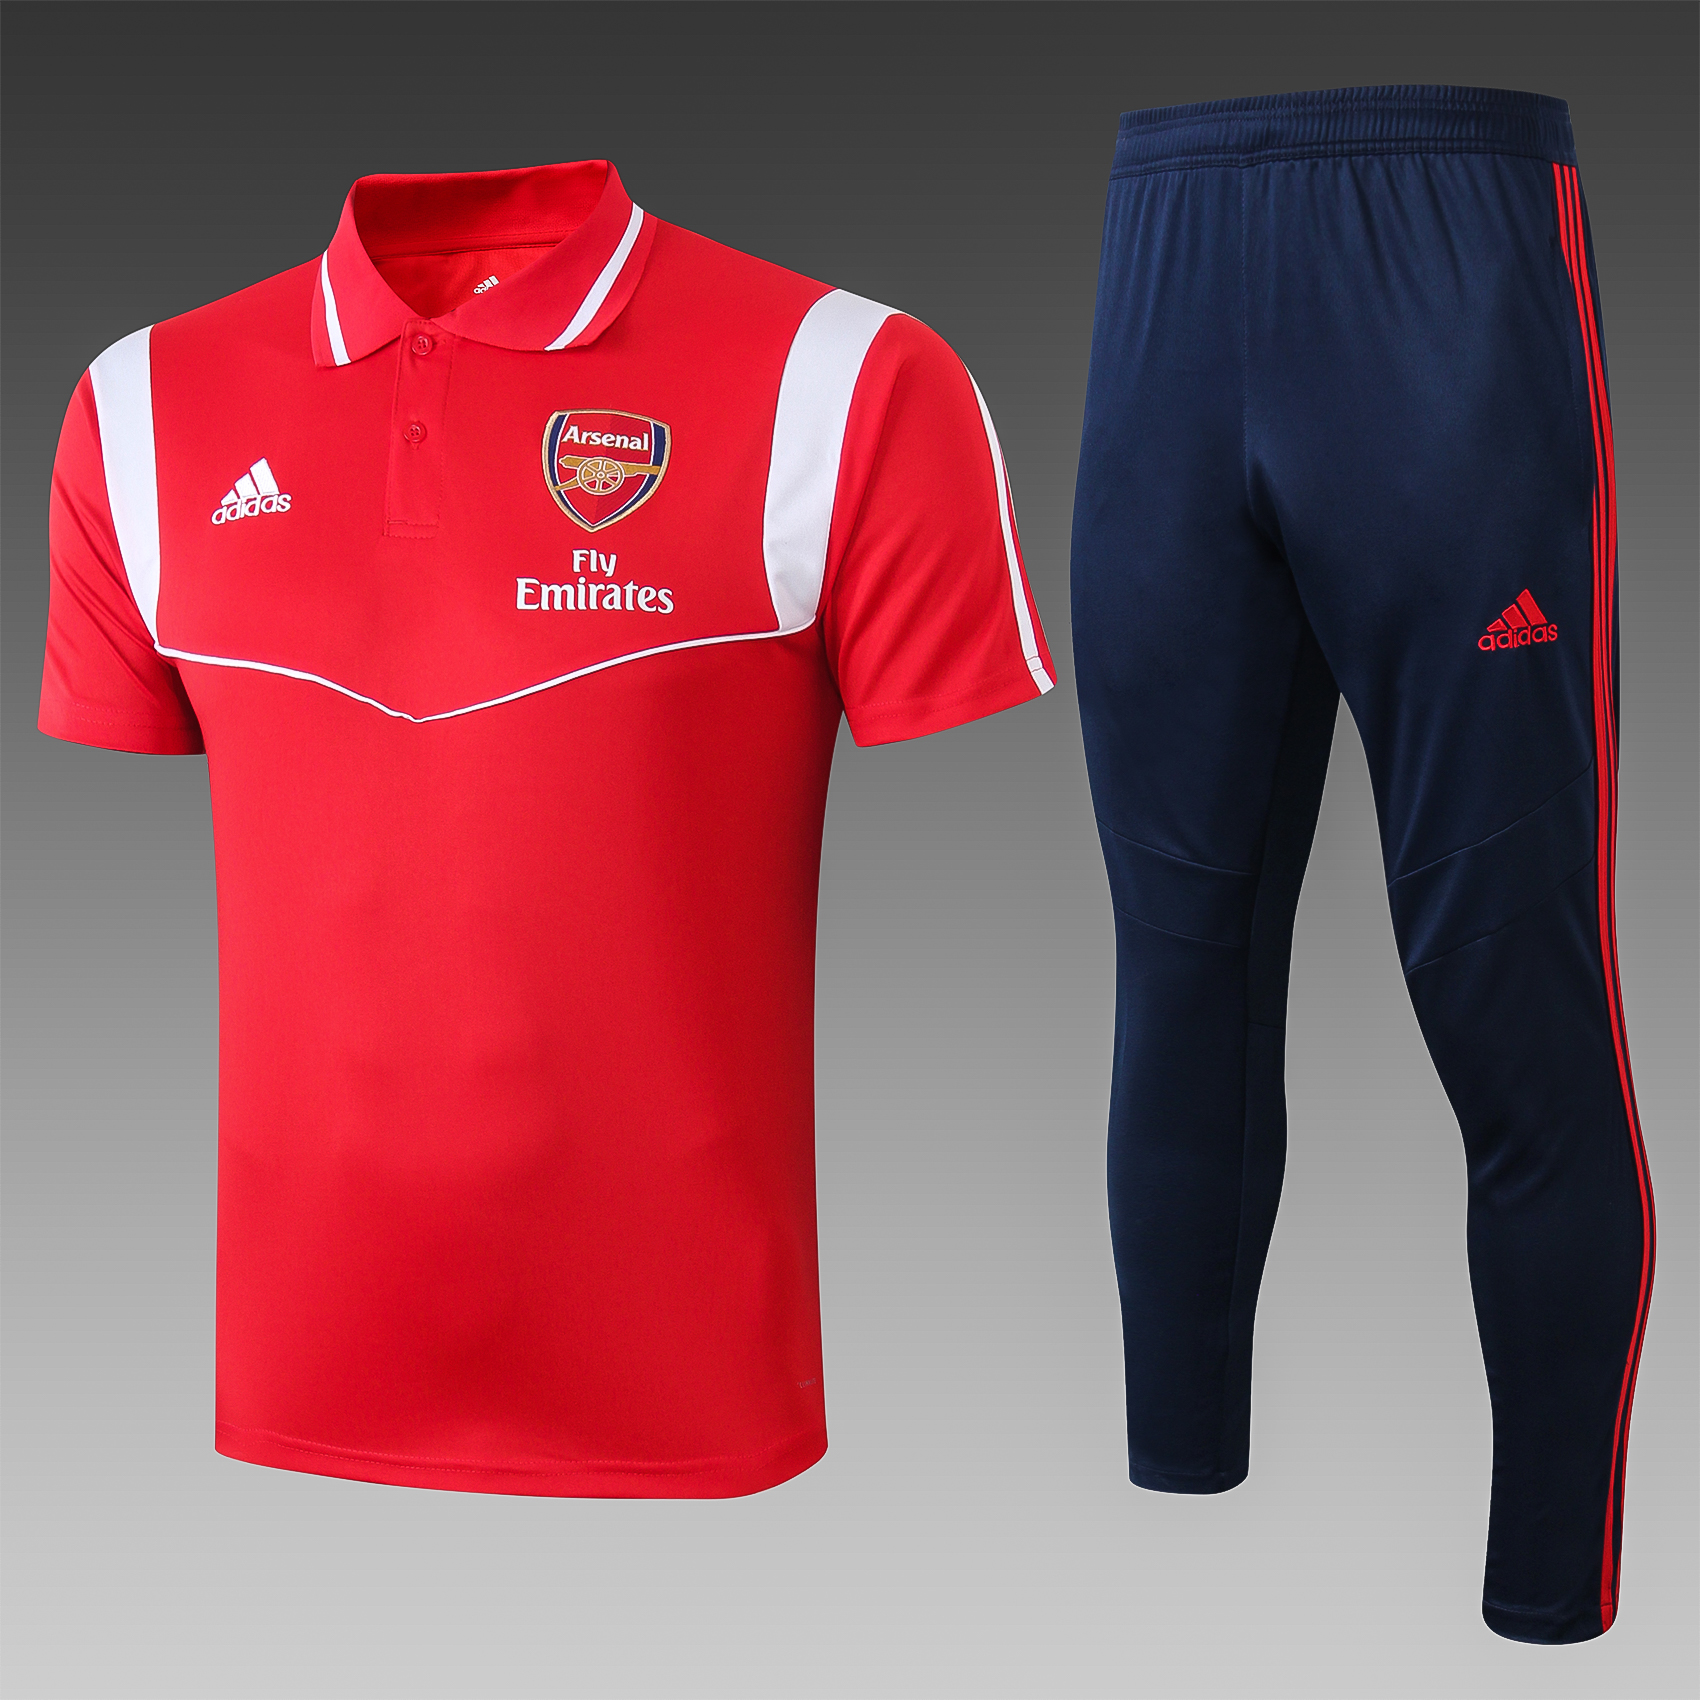 camiseta 1920 Polo Arsenal Rojo